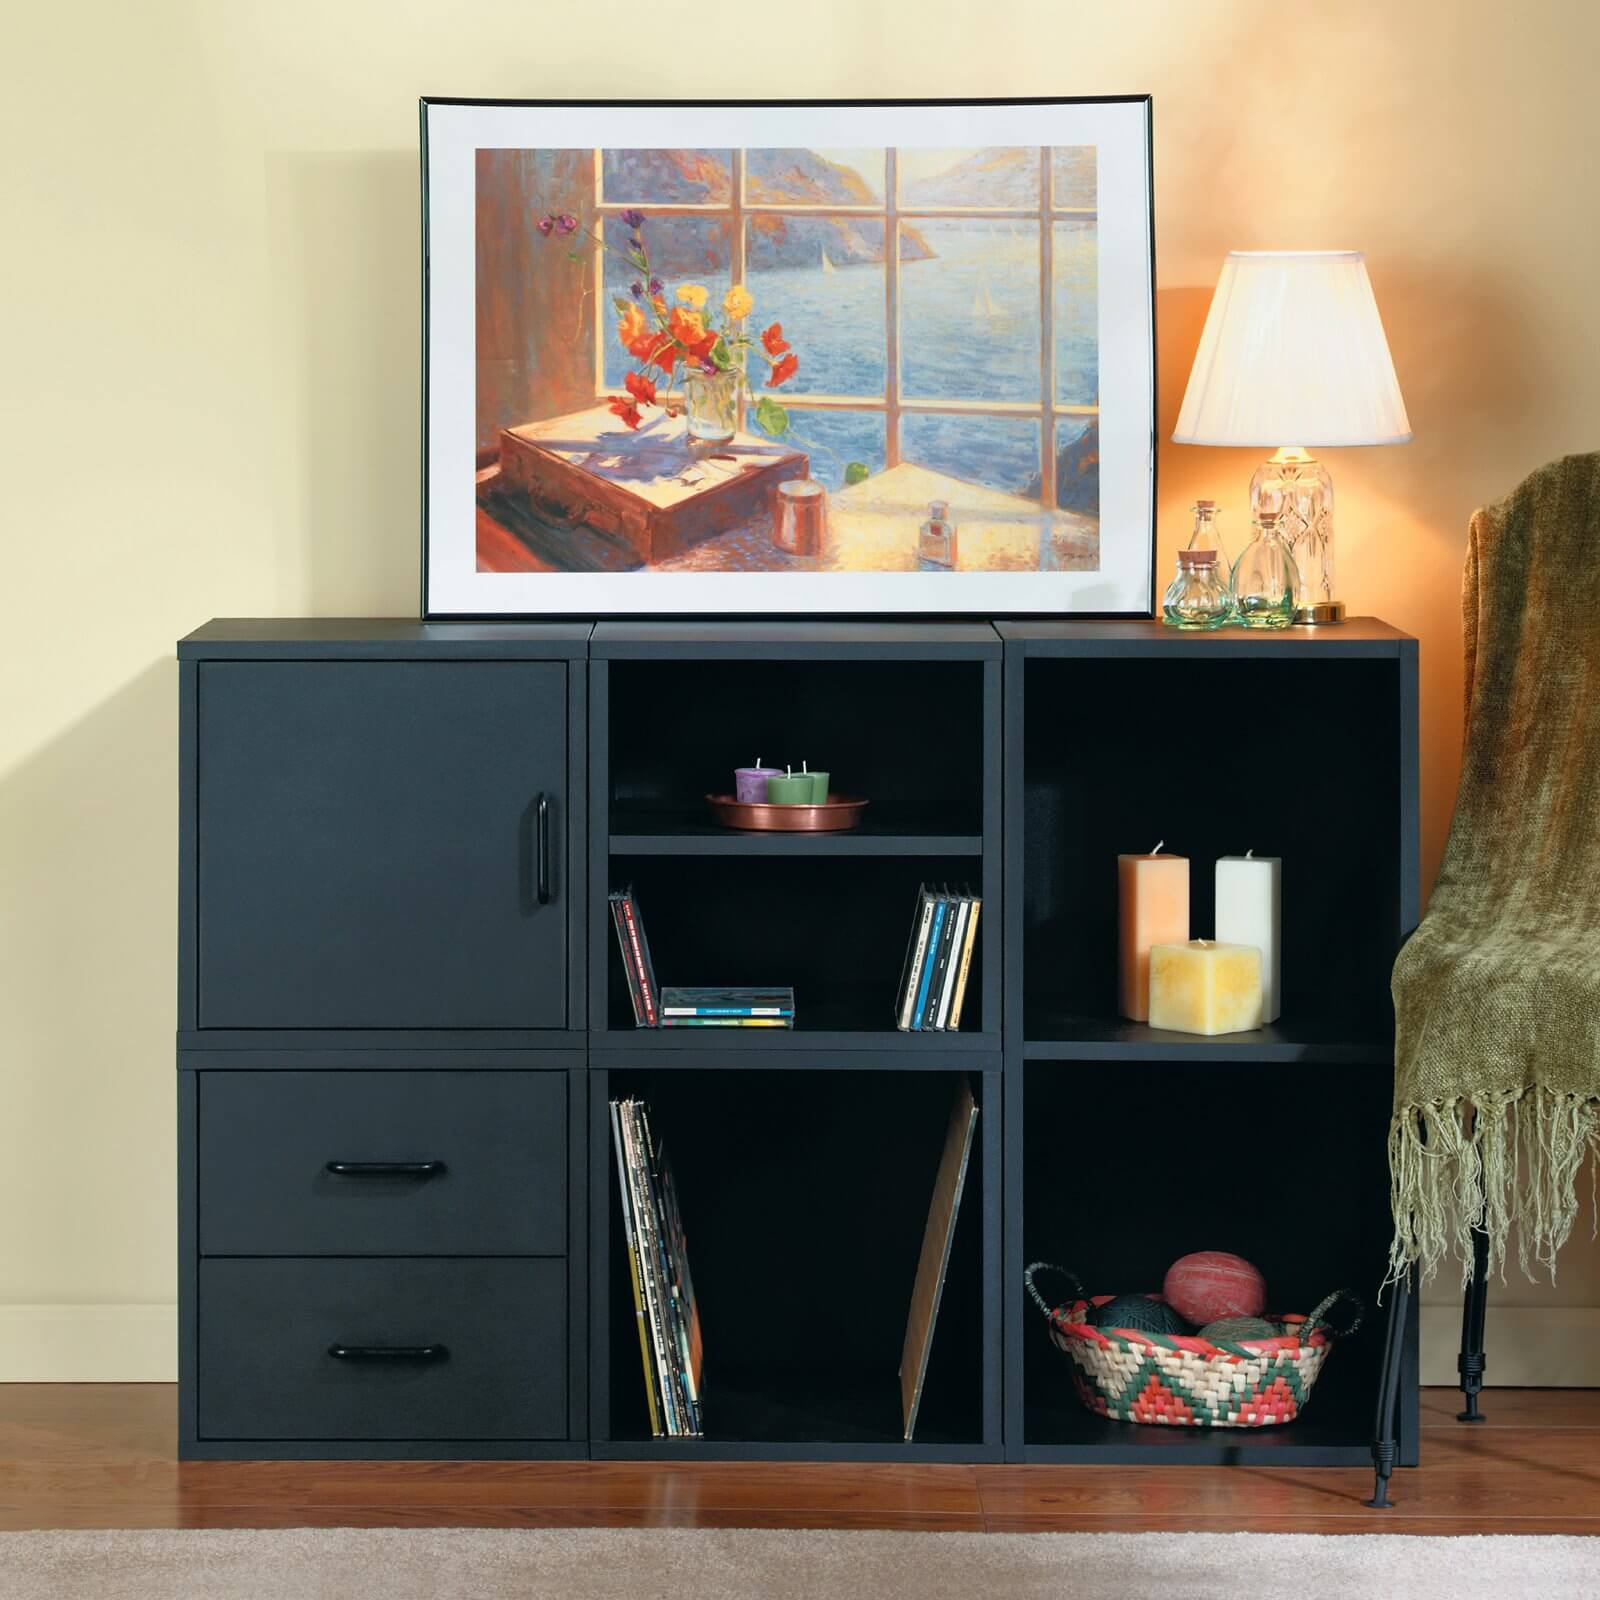 Modular bookcases come in sets of 2, 3, or more. These are designed to interlock or rest against each other in arrays of your own choosing. Often appearing in cube-based configurations, these models are meant to be tailored to your needs, and can be added upon after purchase.